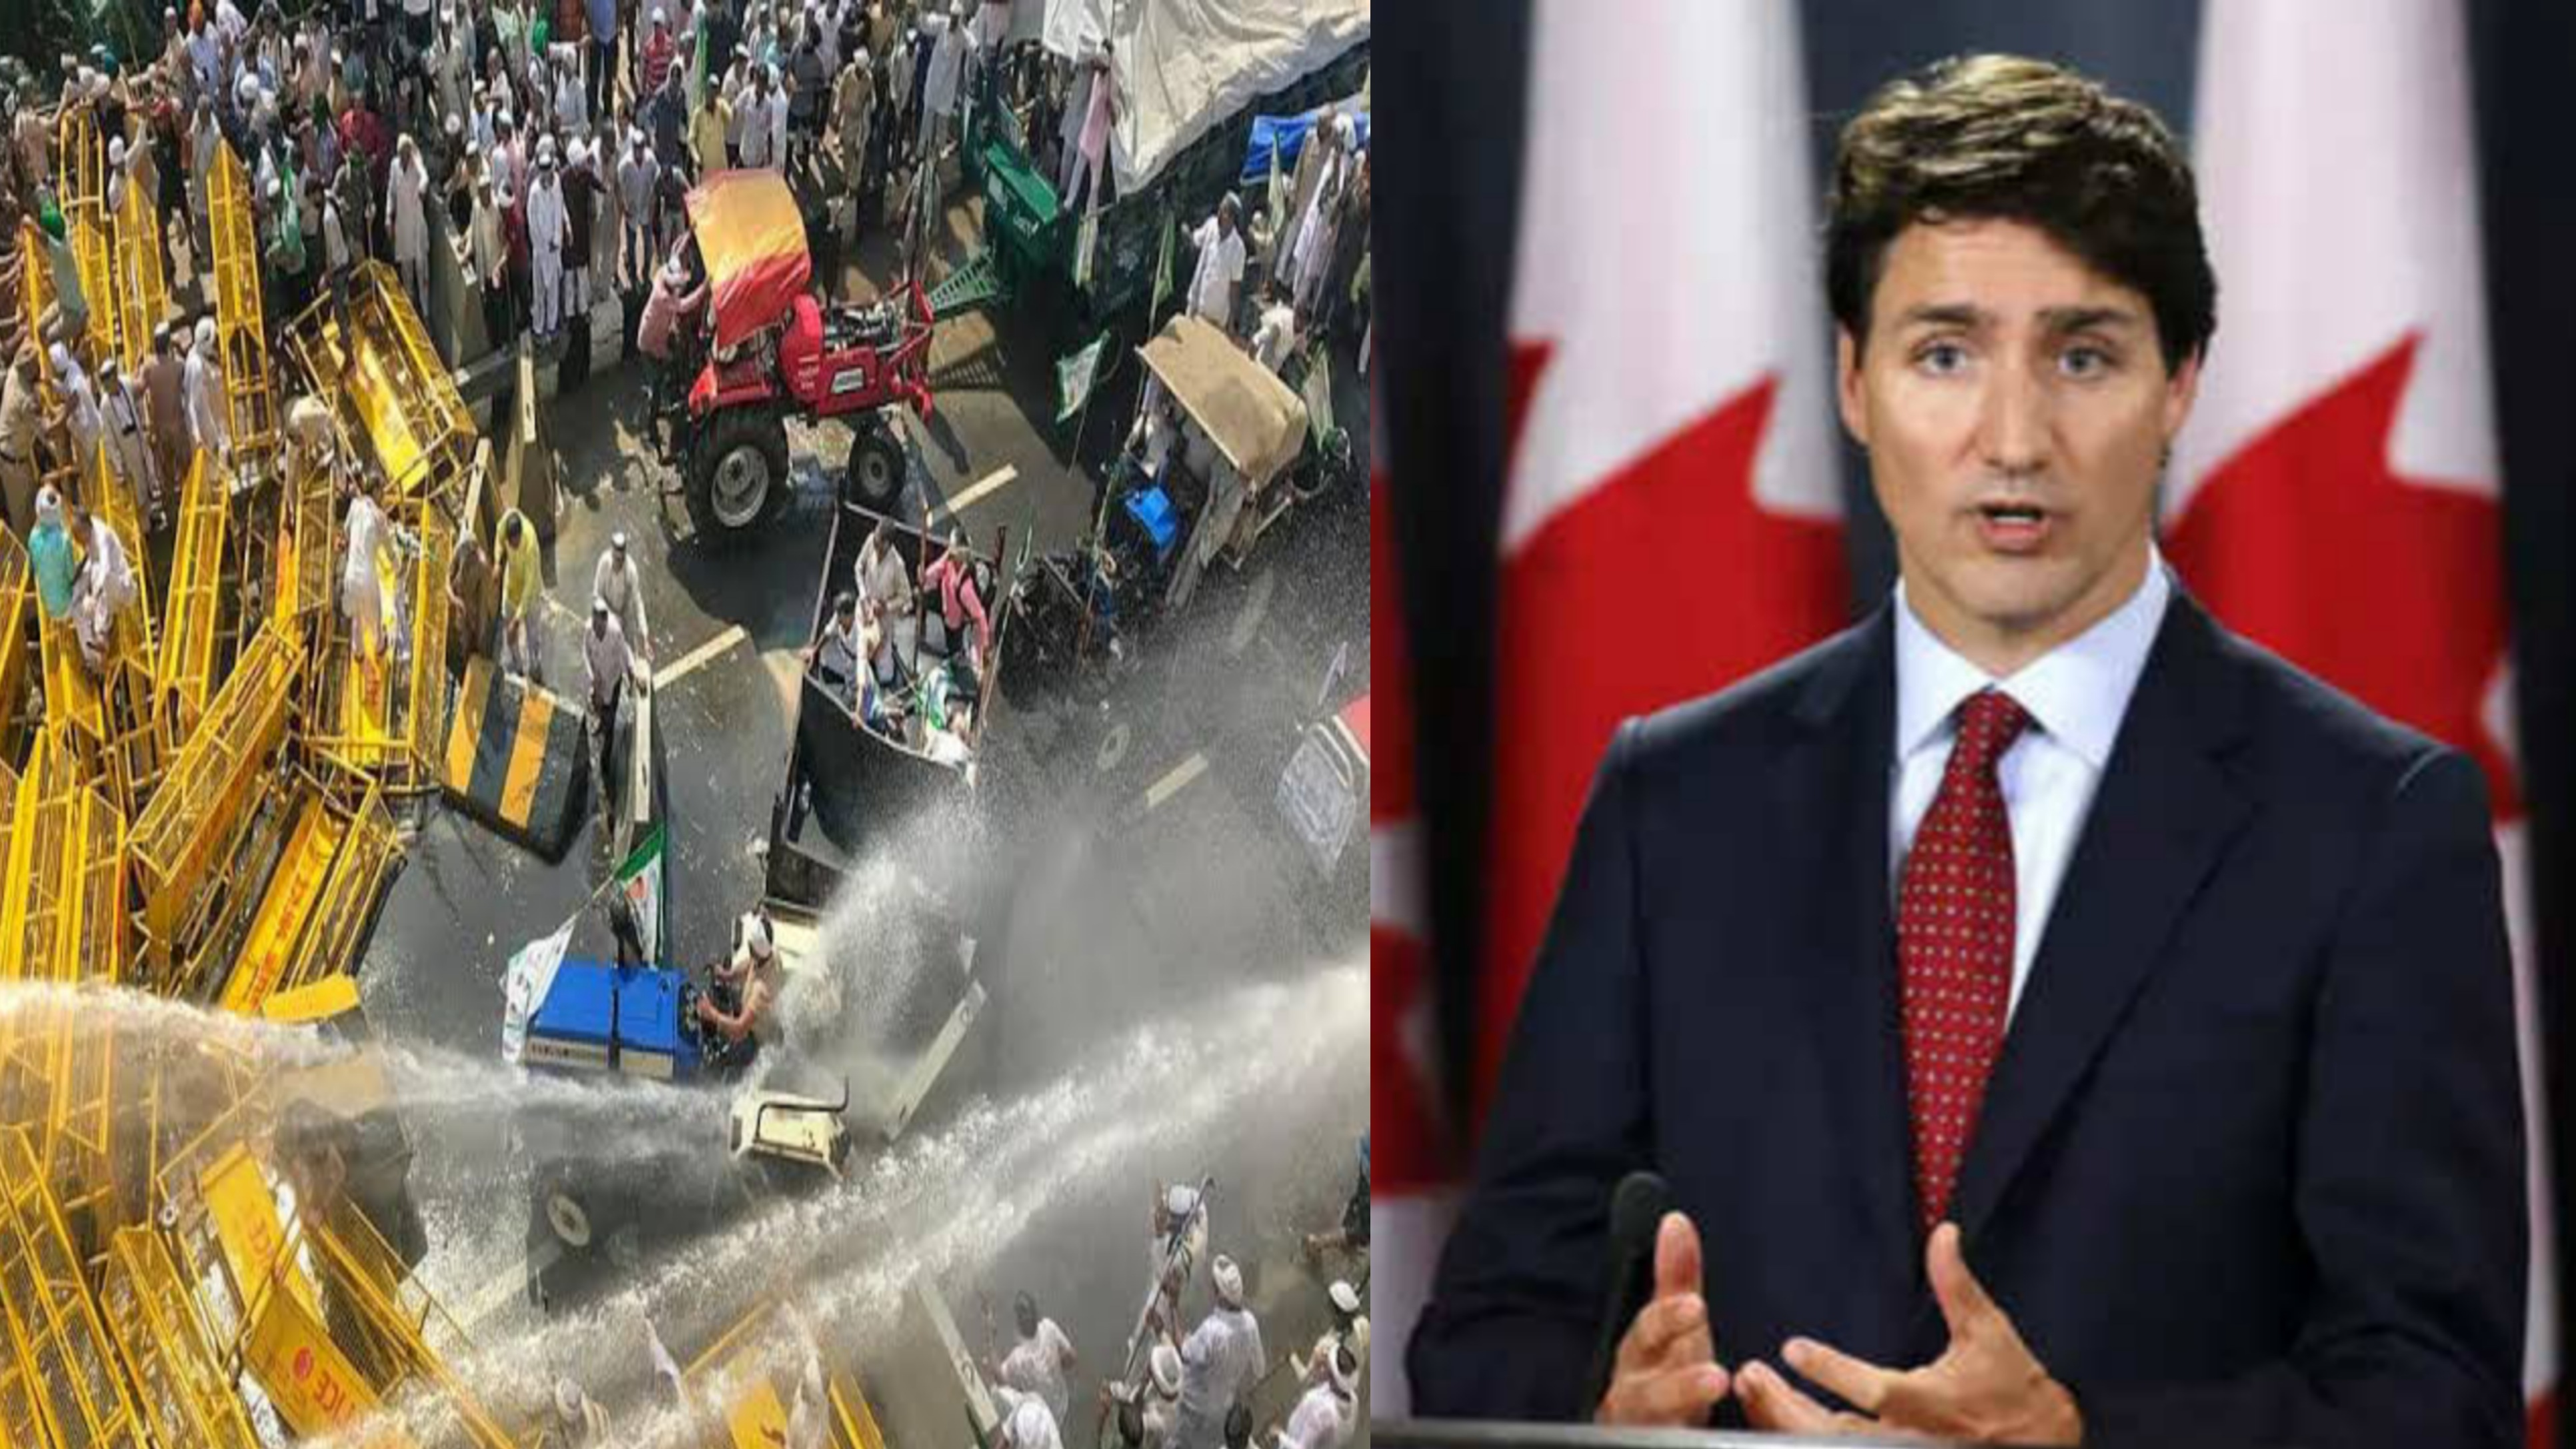 Canadian Prime Minister Justin Trudeau on farmers protest in India